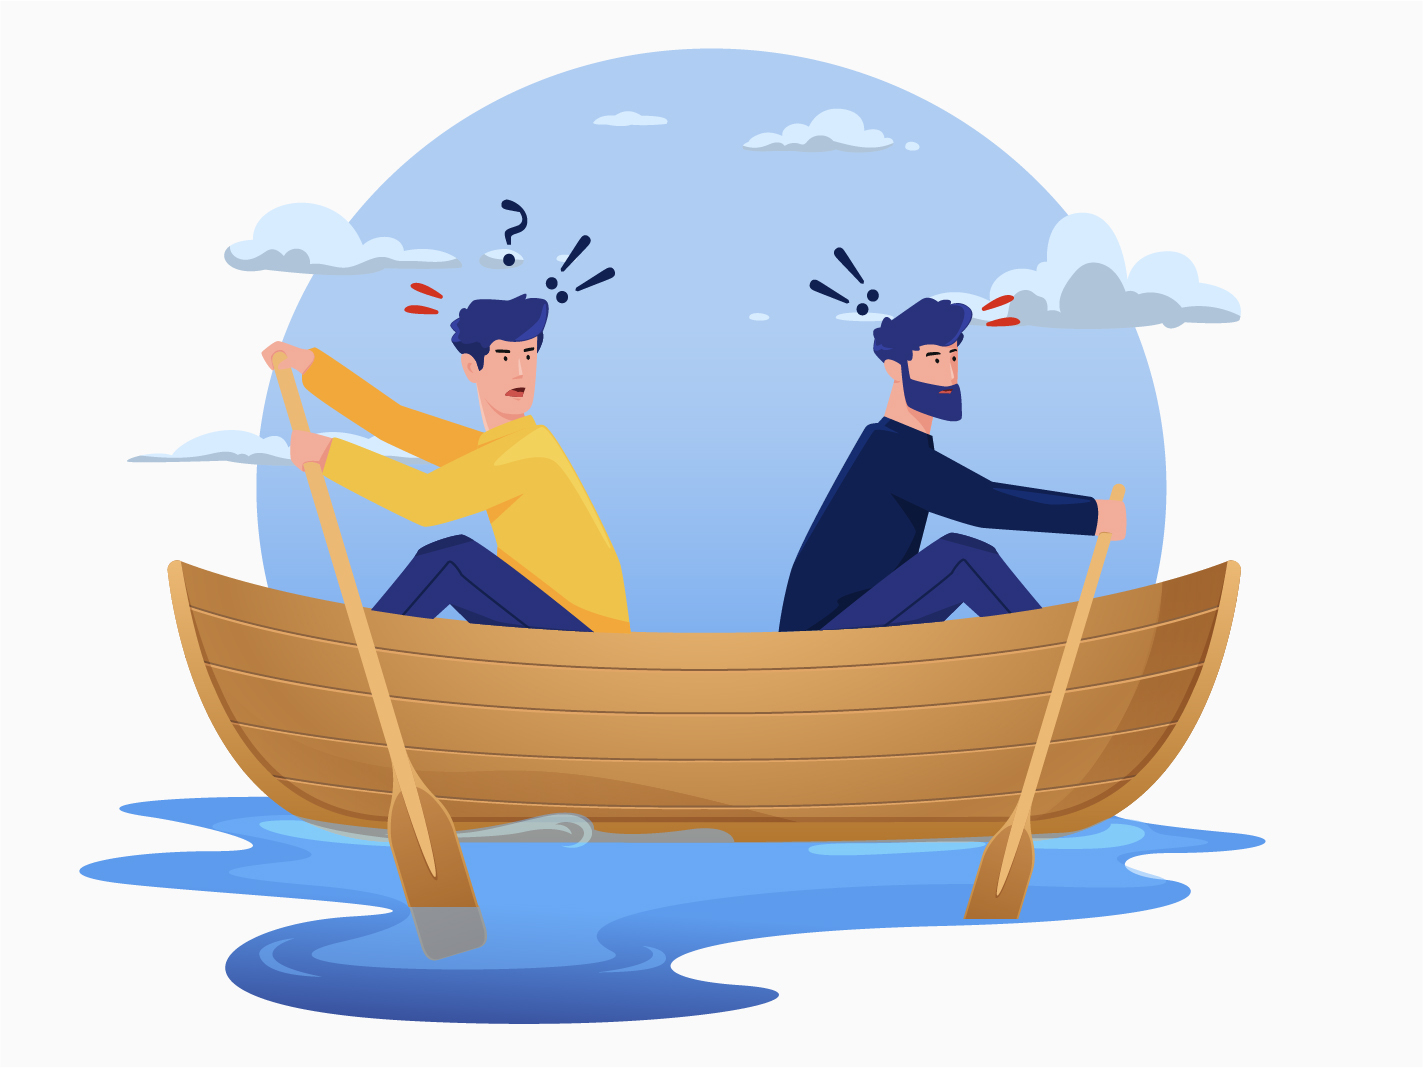 conflict interview questions two men in a canoe paddling in different directions